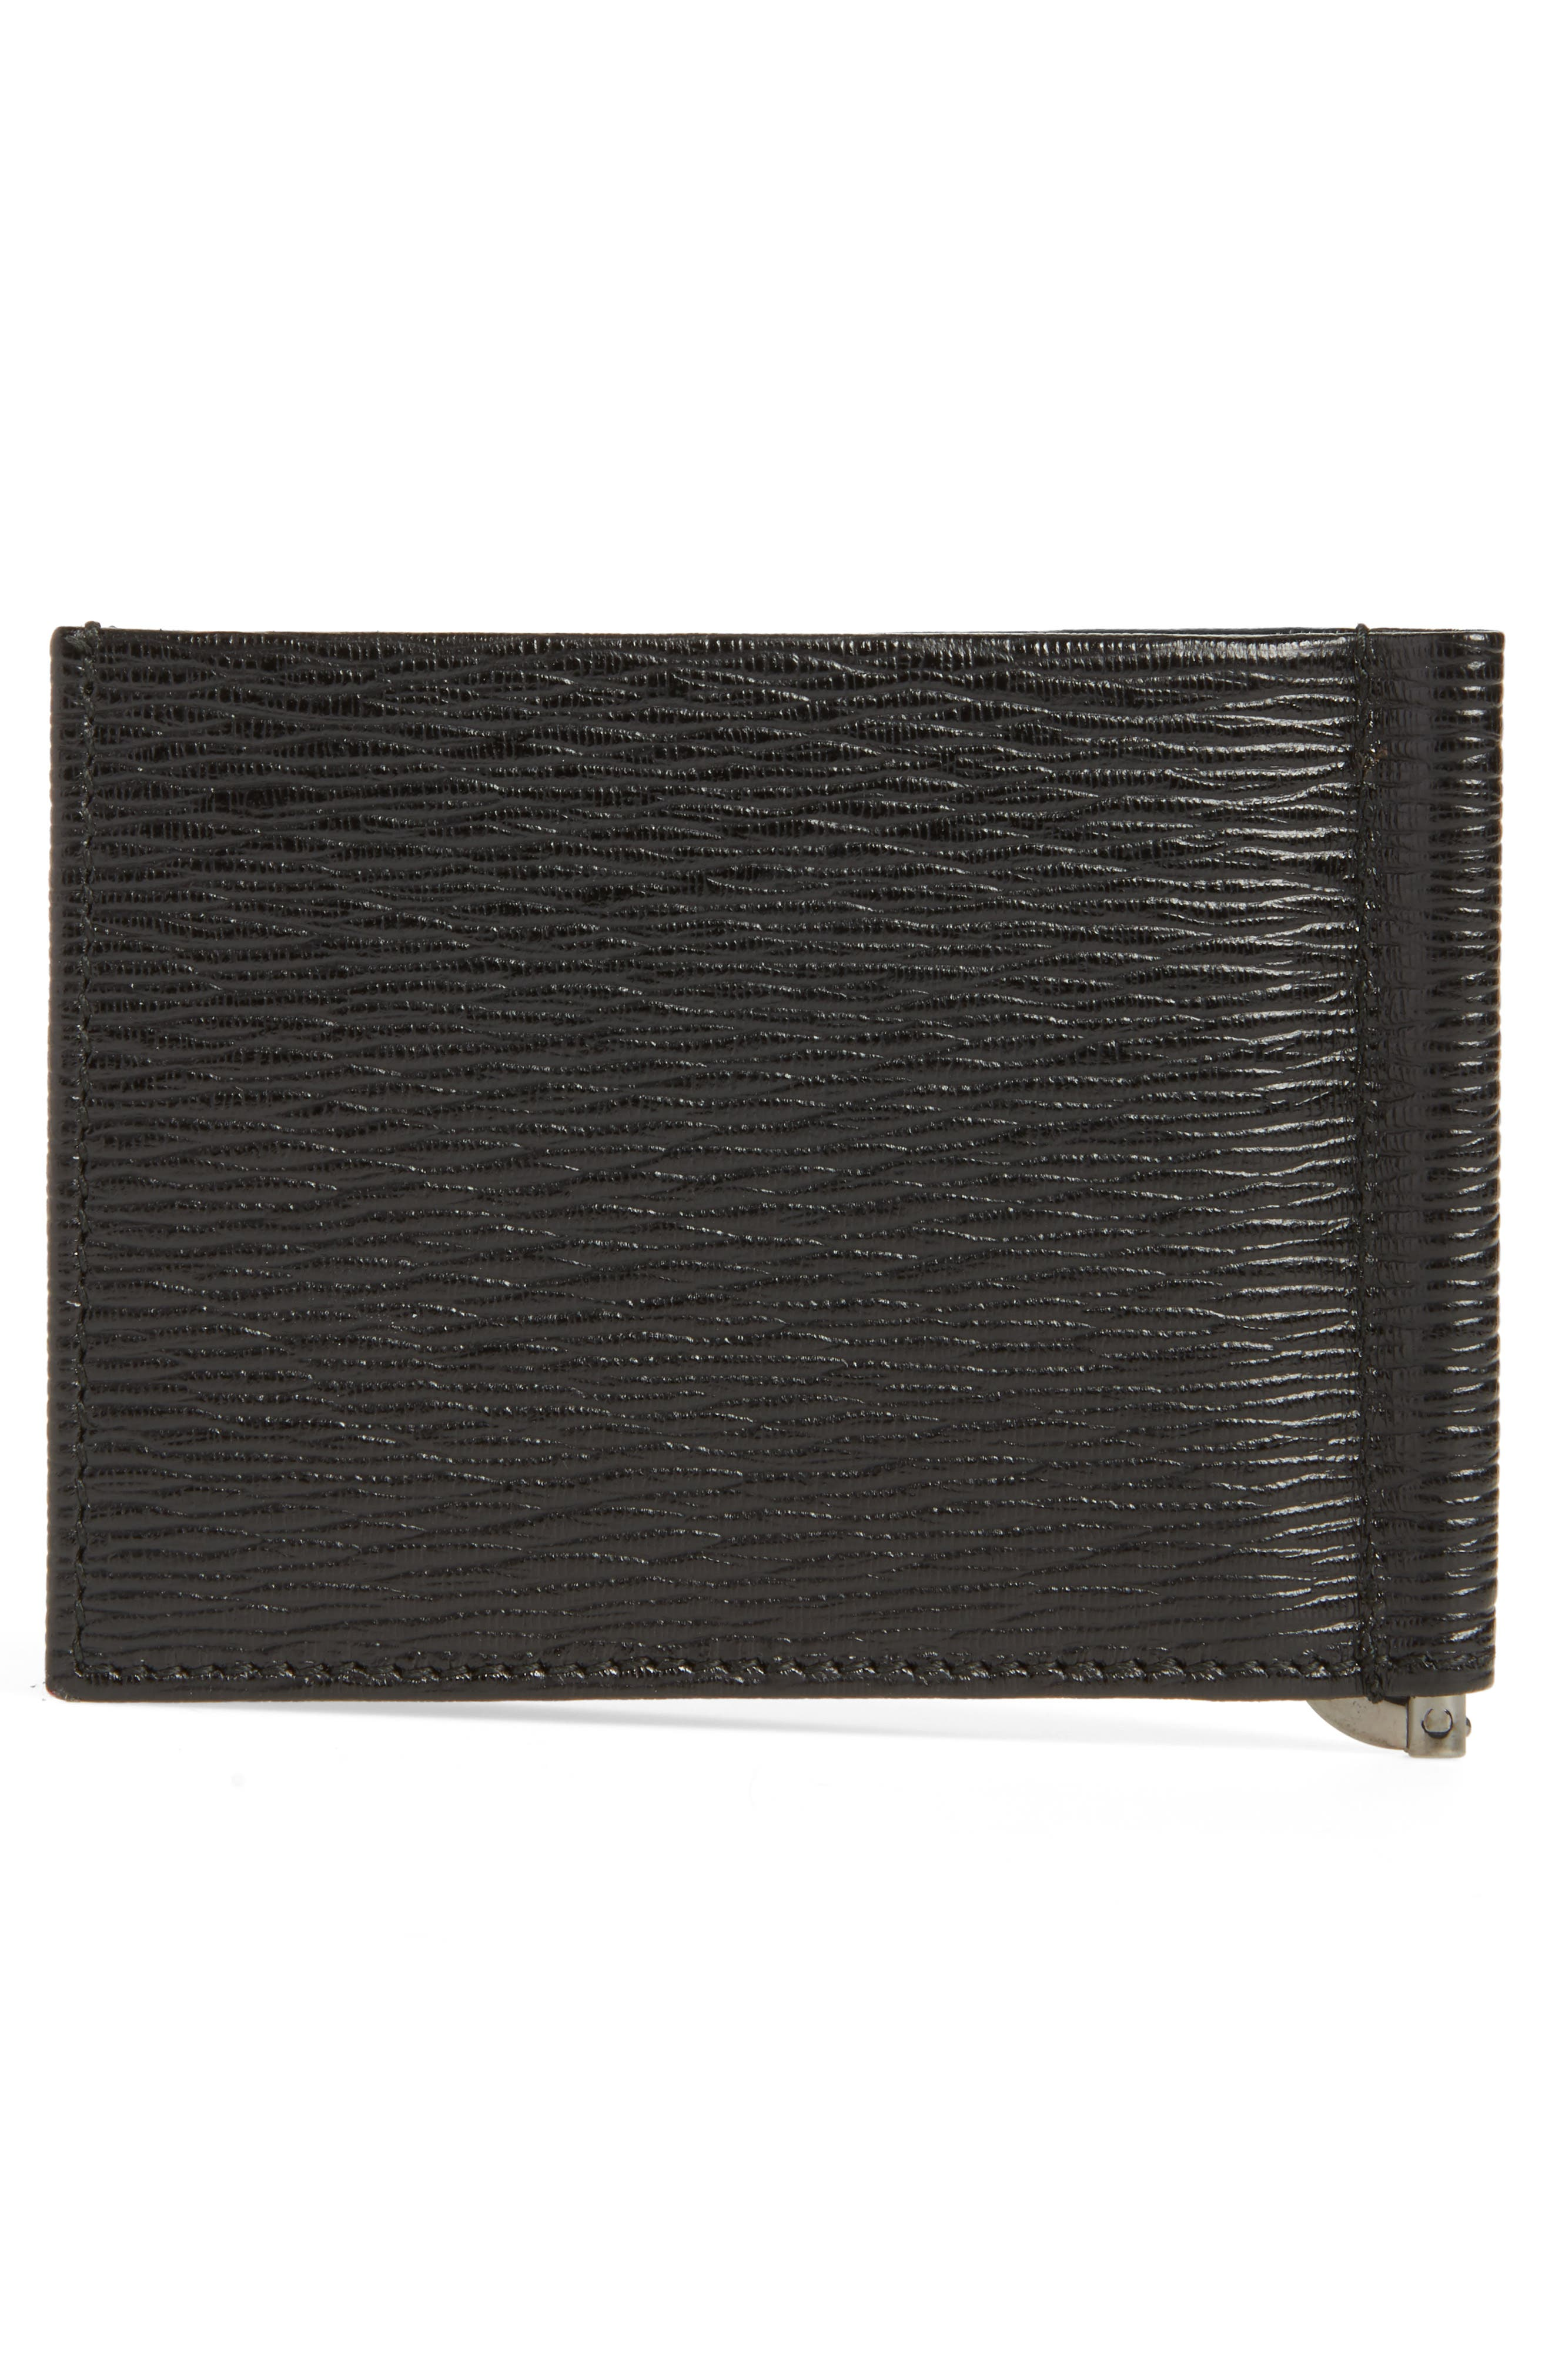 Revival Bifold Leather Wallet,                             Alternate thumbnail 3, color,                             NERO